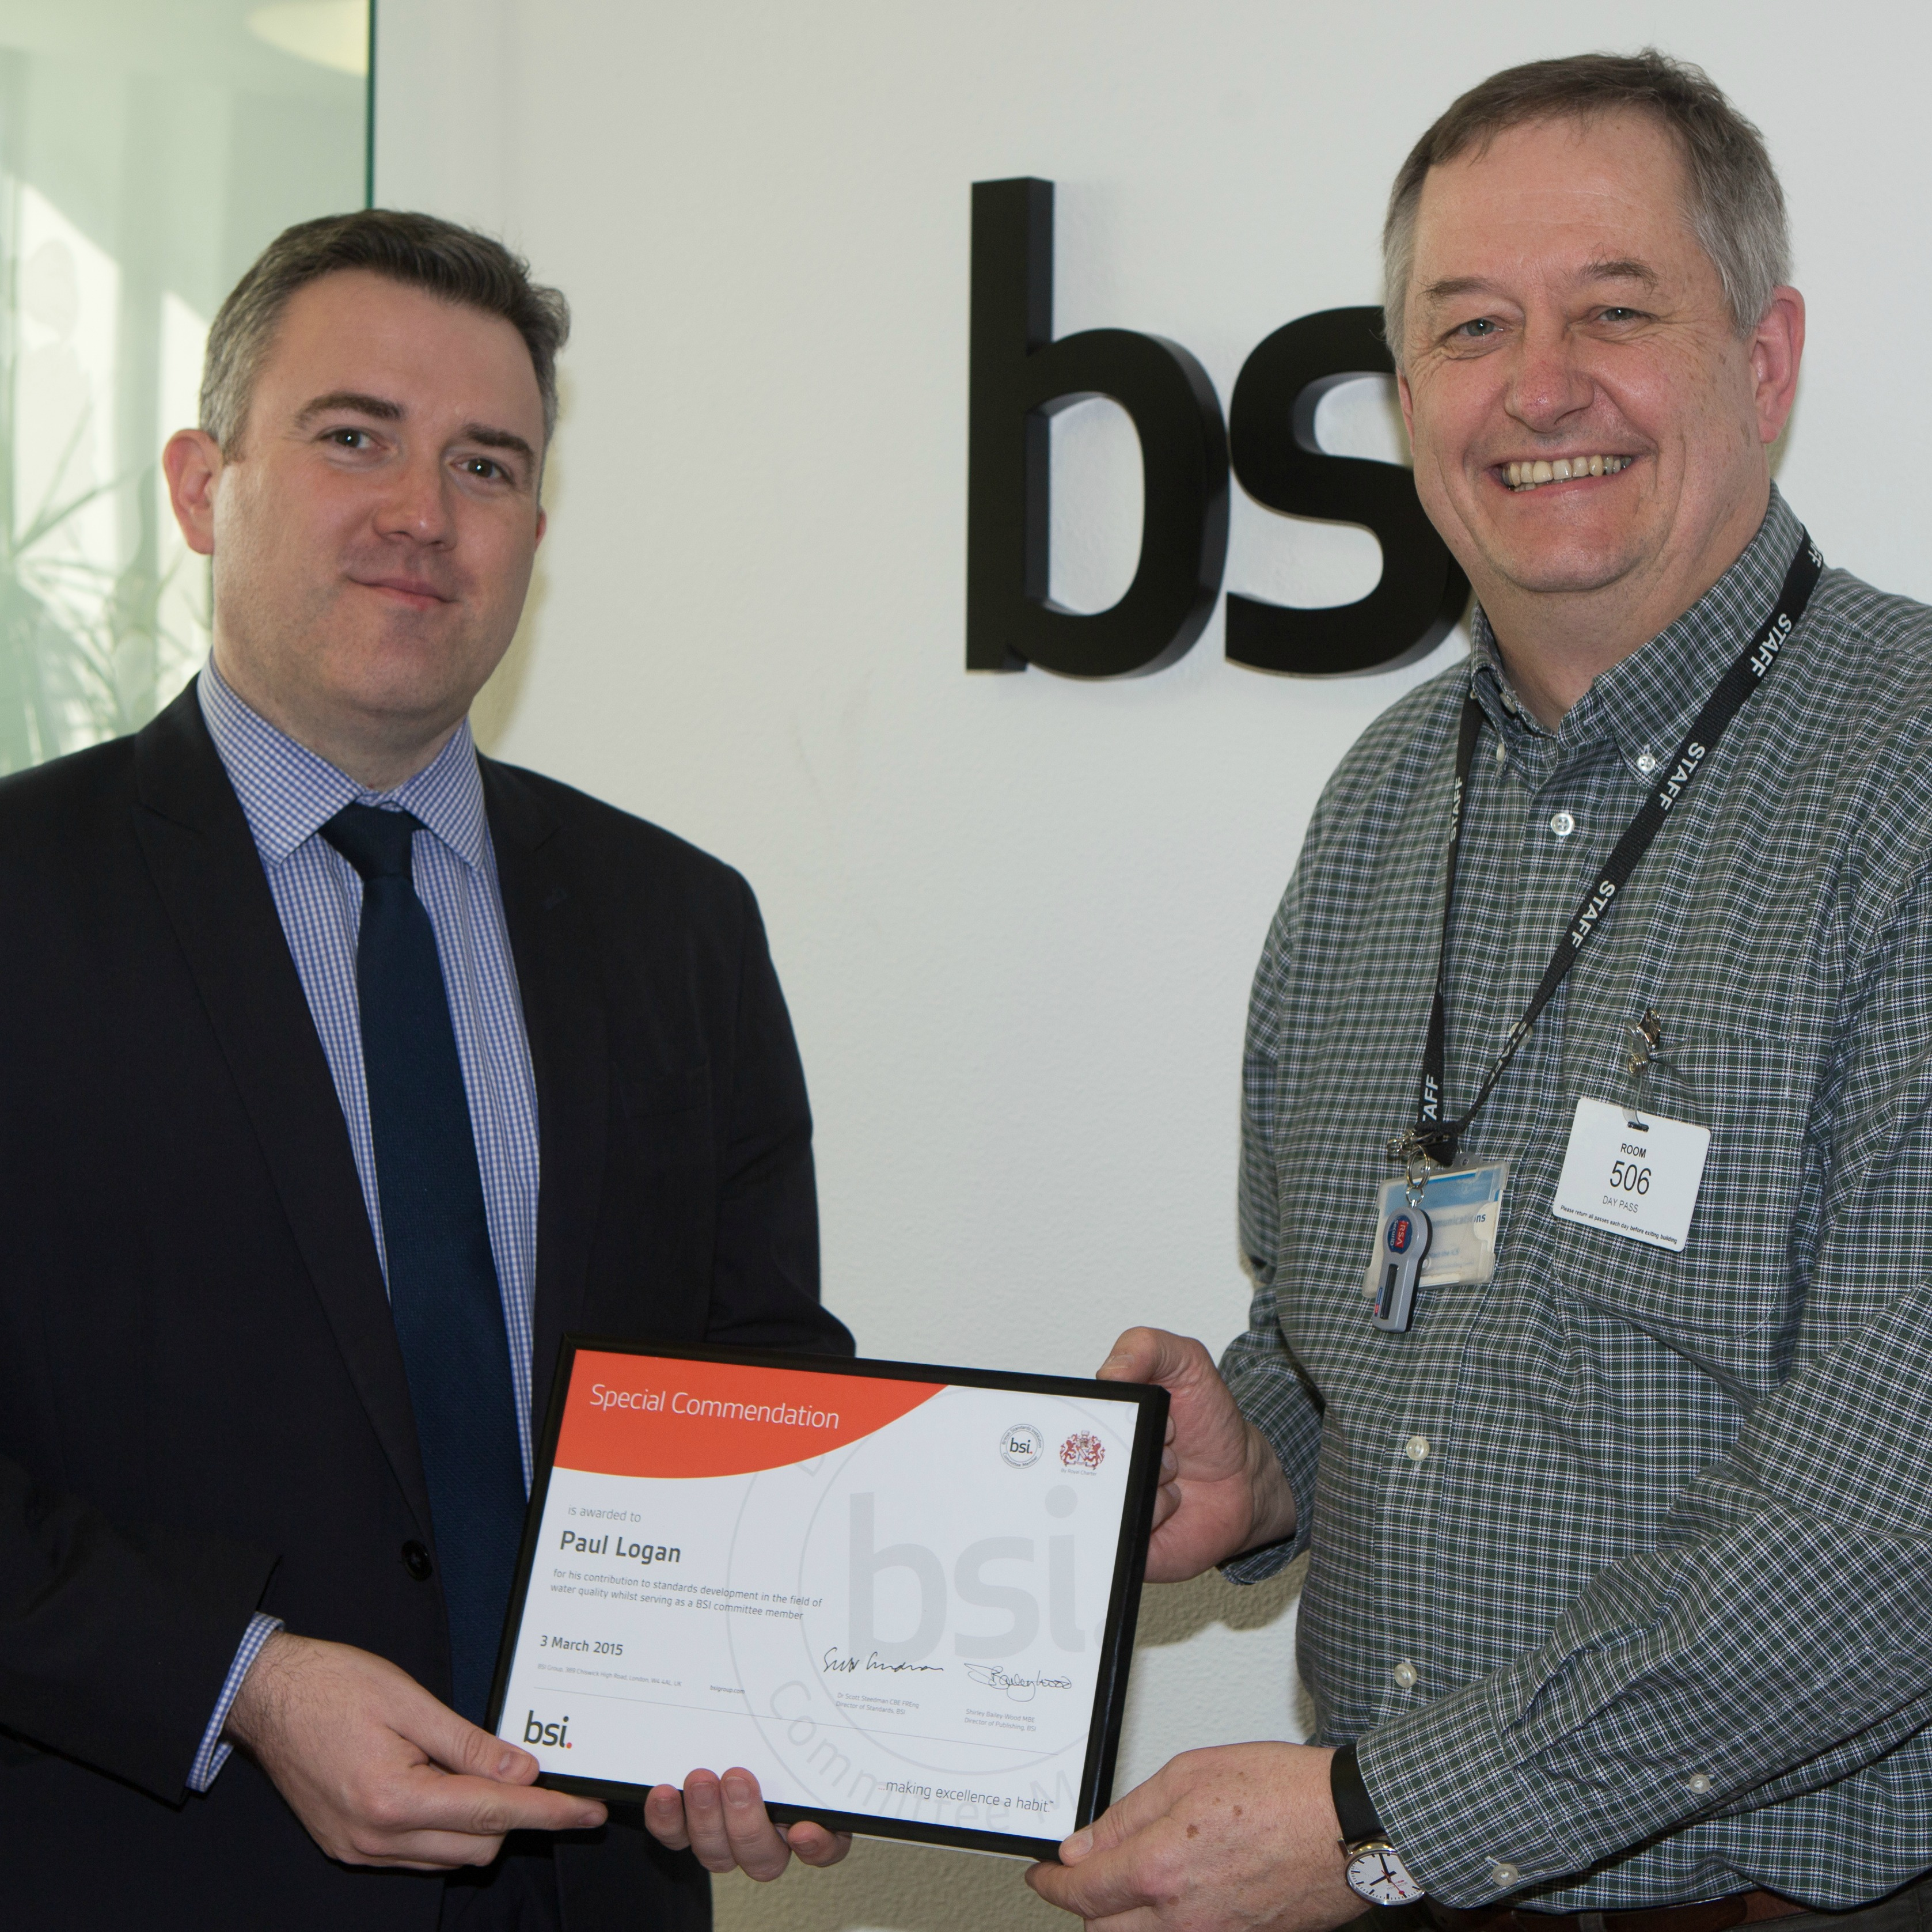 Paul Logan (right) receives his award from David Bell, BSI